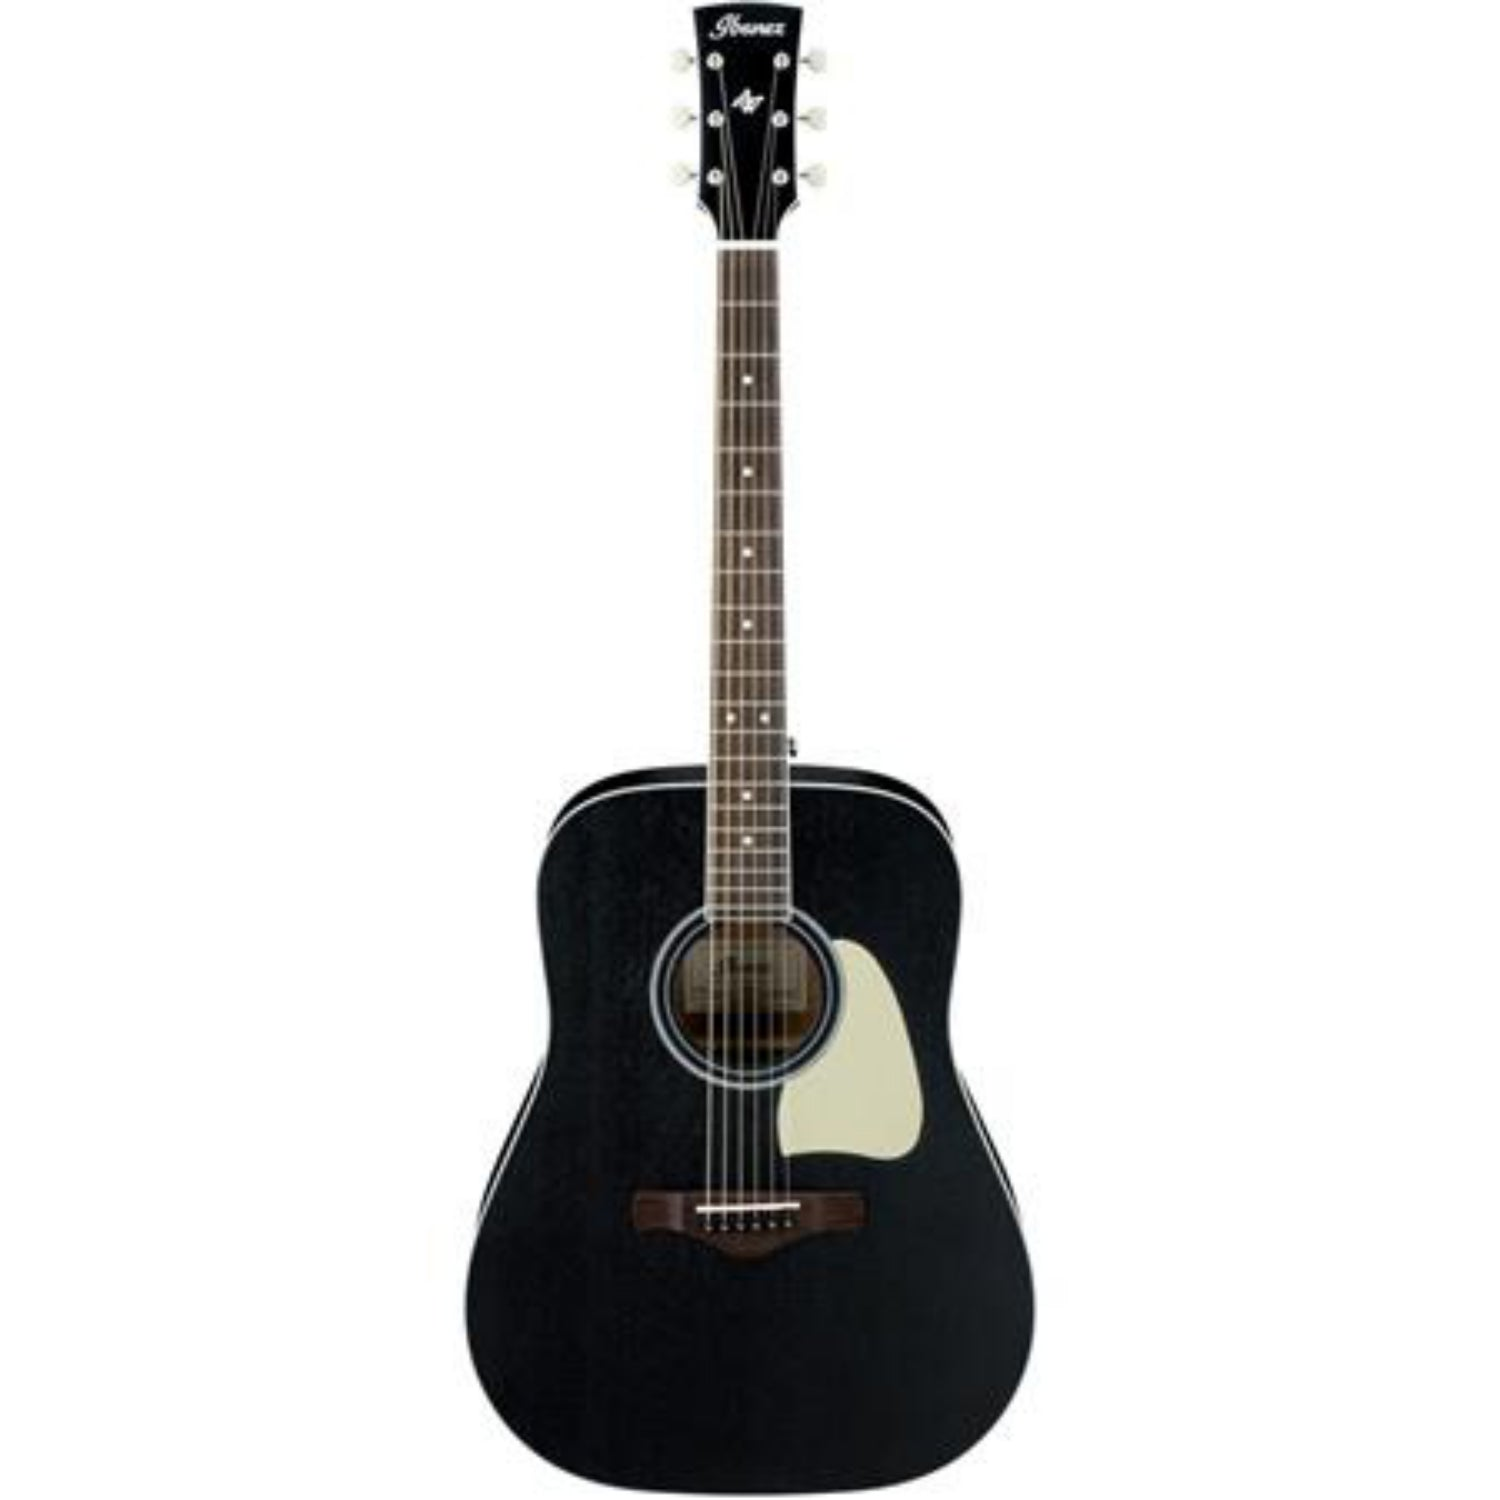 Ibanez Artwood Series Solid Top Dreadnought Acoustic Guitar - Black & White